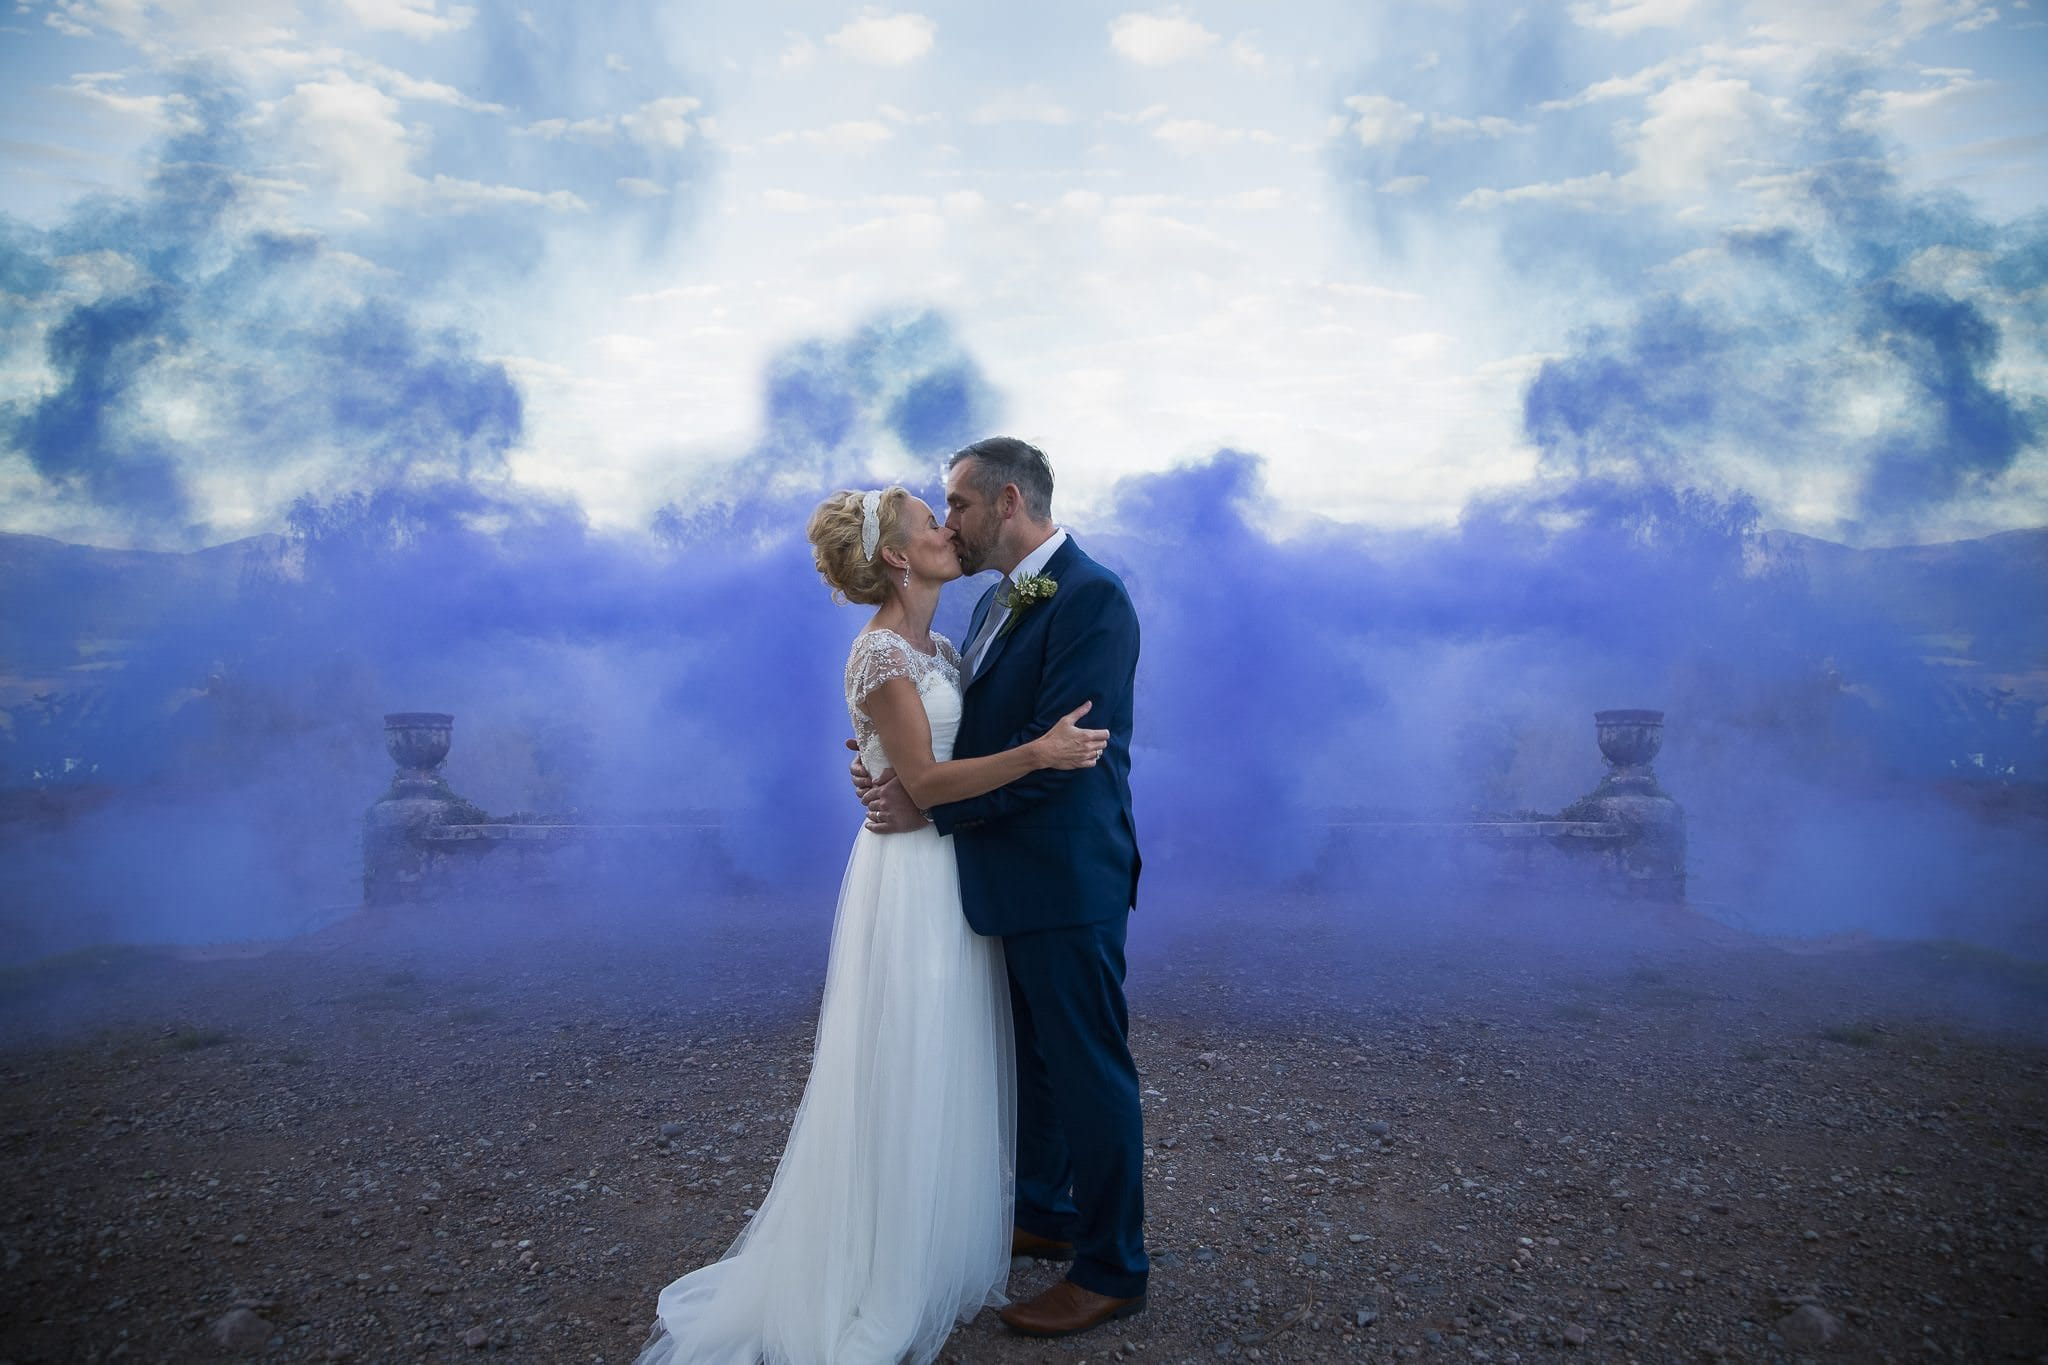 Wedding photograph with smoke bombs as background at Muncaster castle